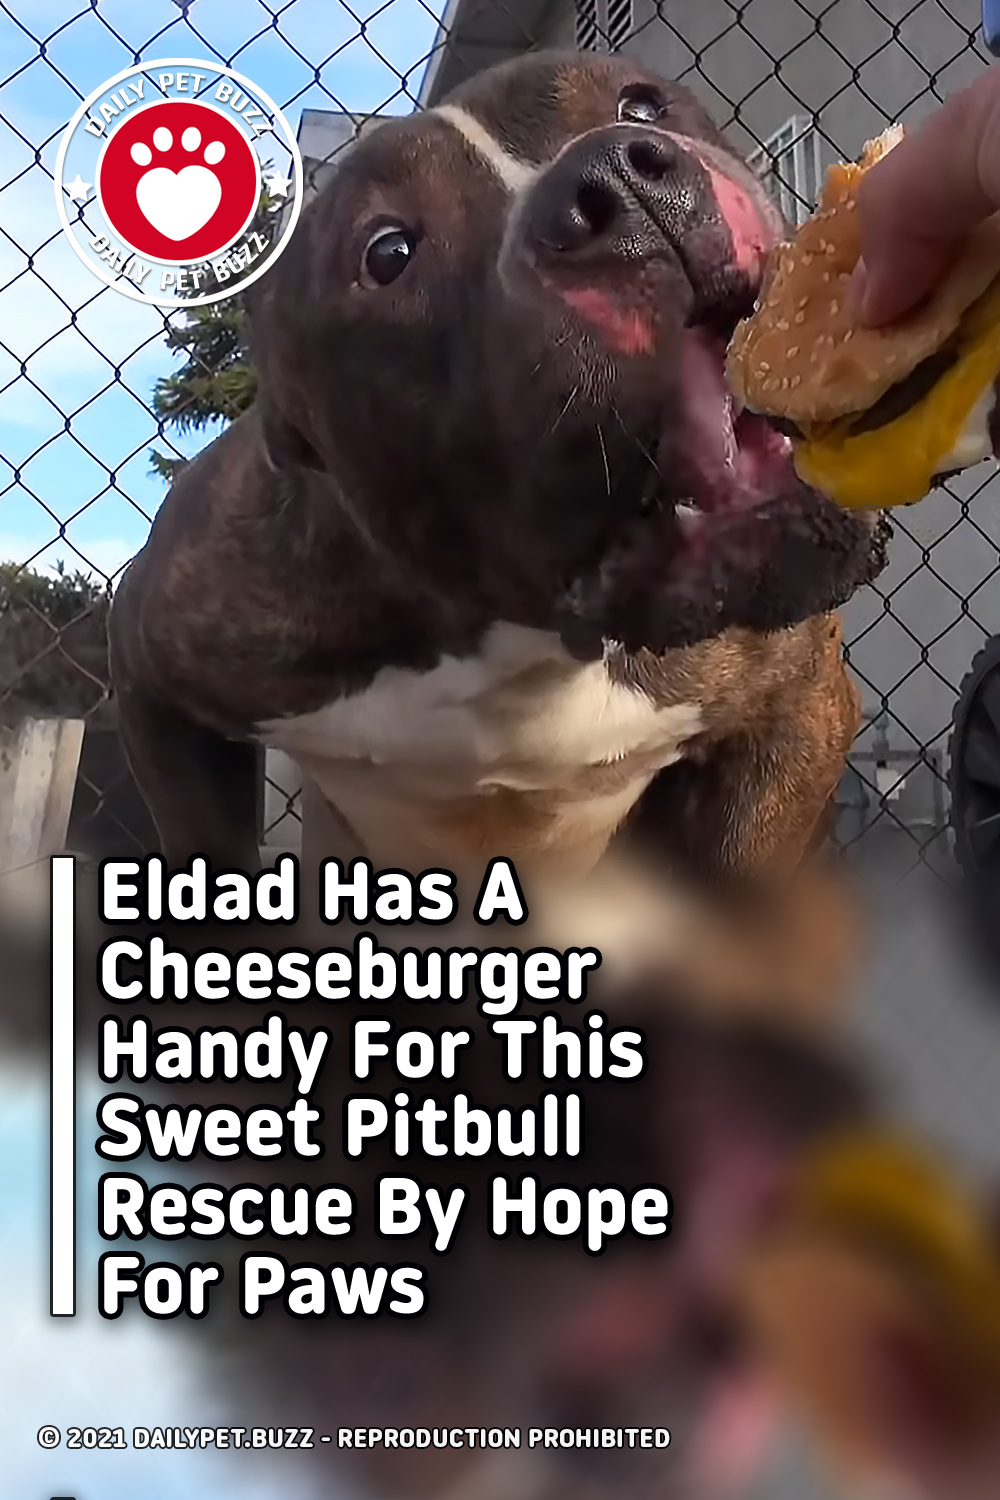 Eldad Has A Cheeseburger Handy For This Sweet Pitbull Rescue By Hope For Paws